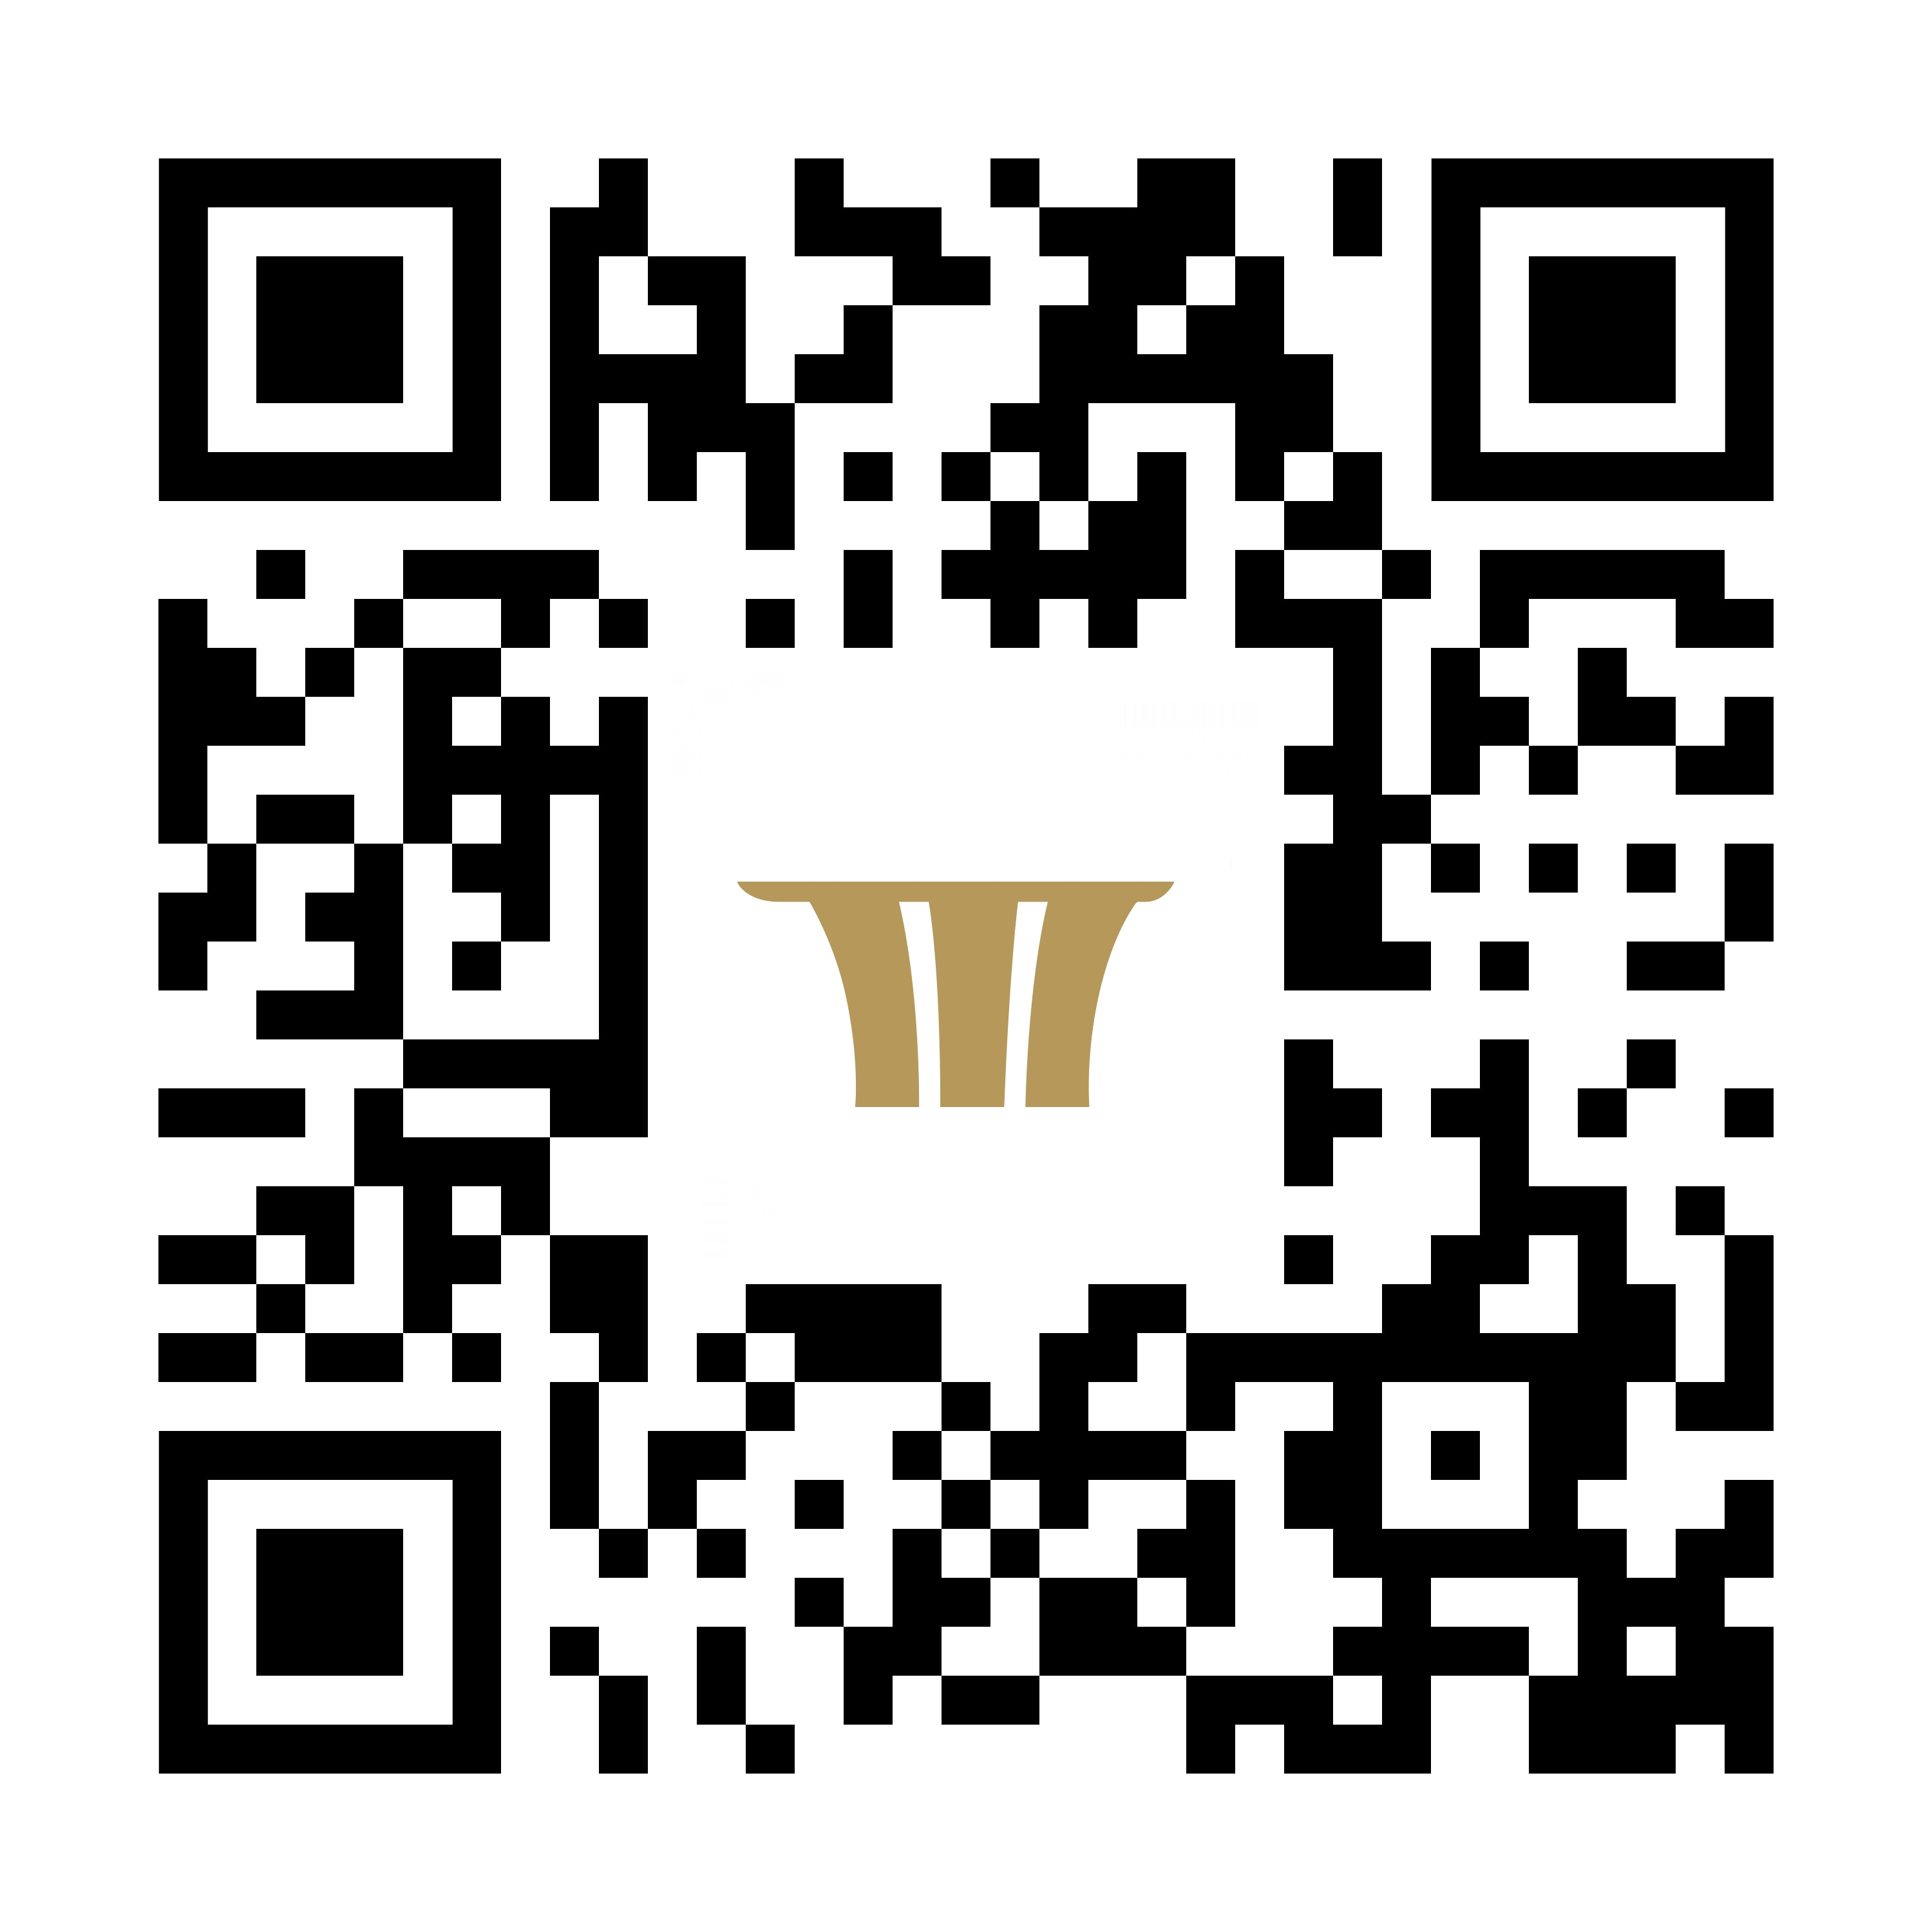 QR code for MBS Mobile App